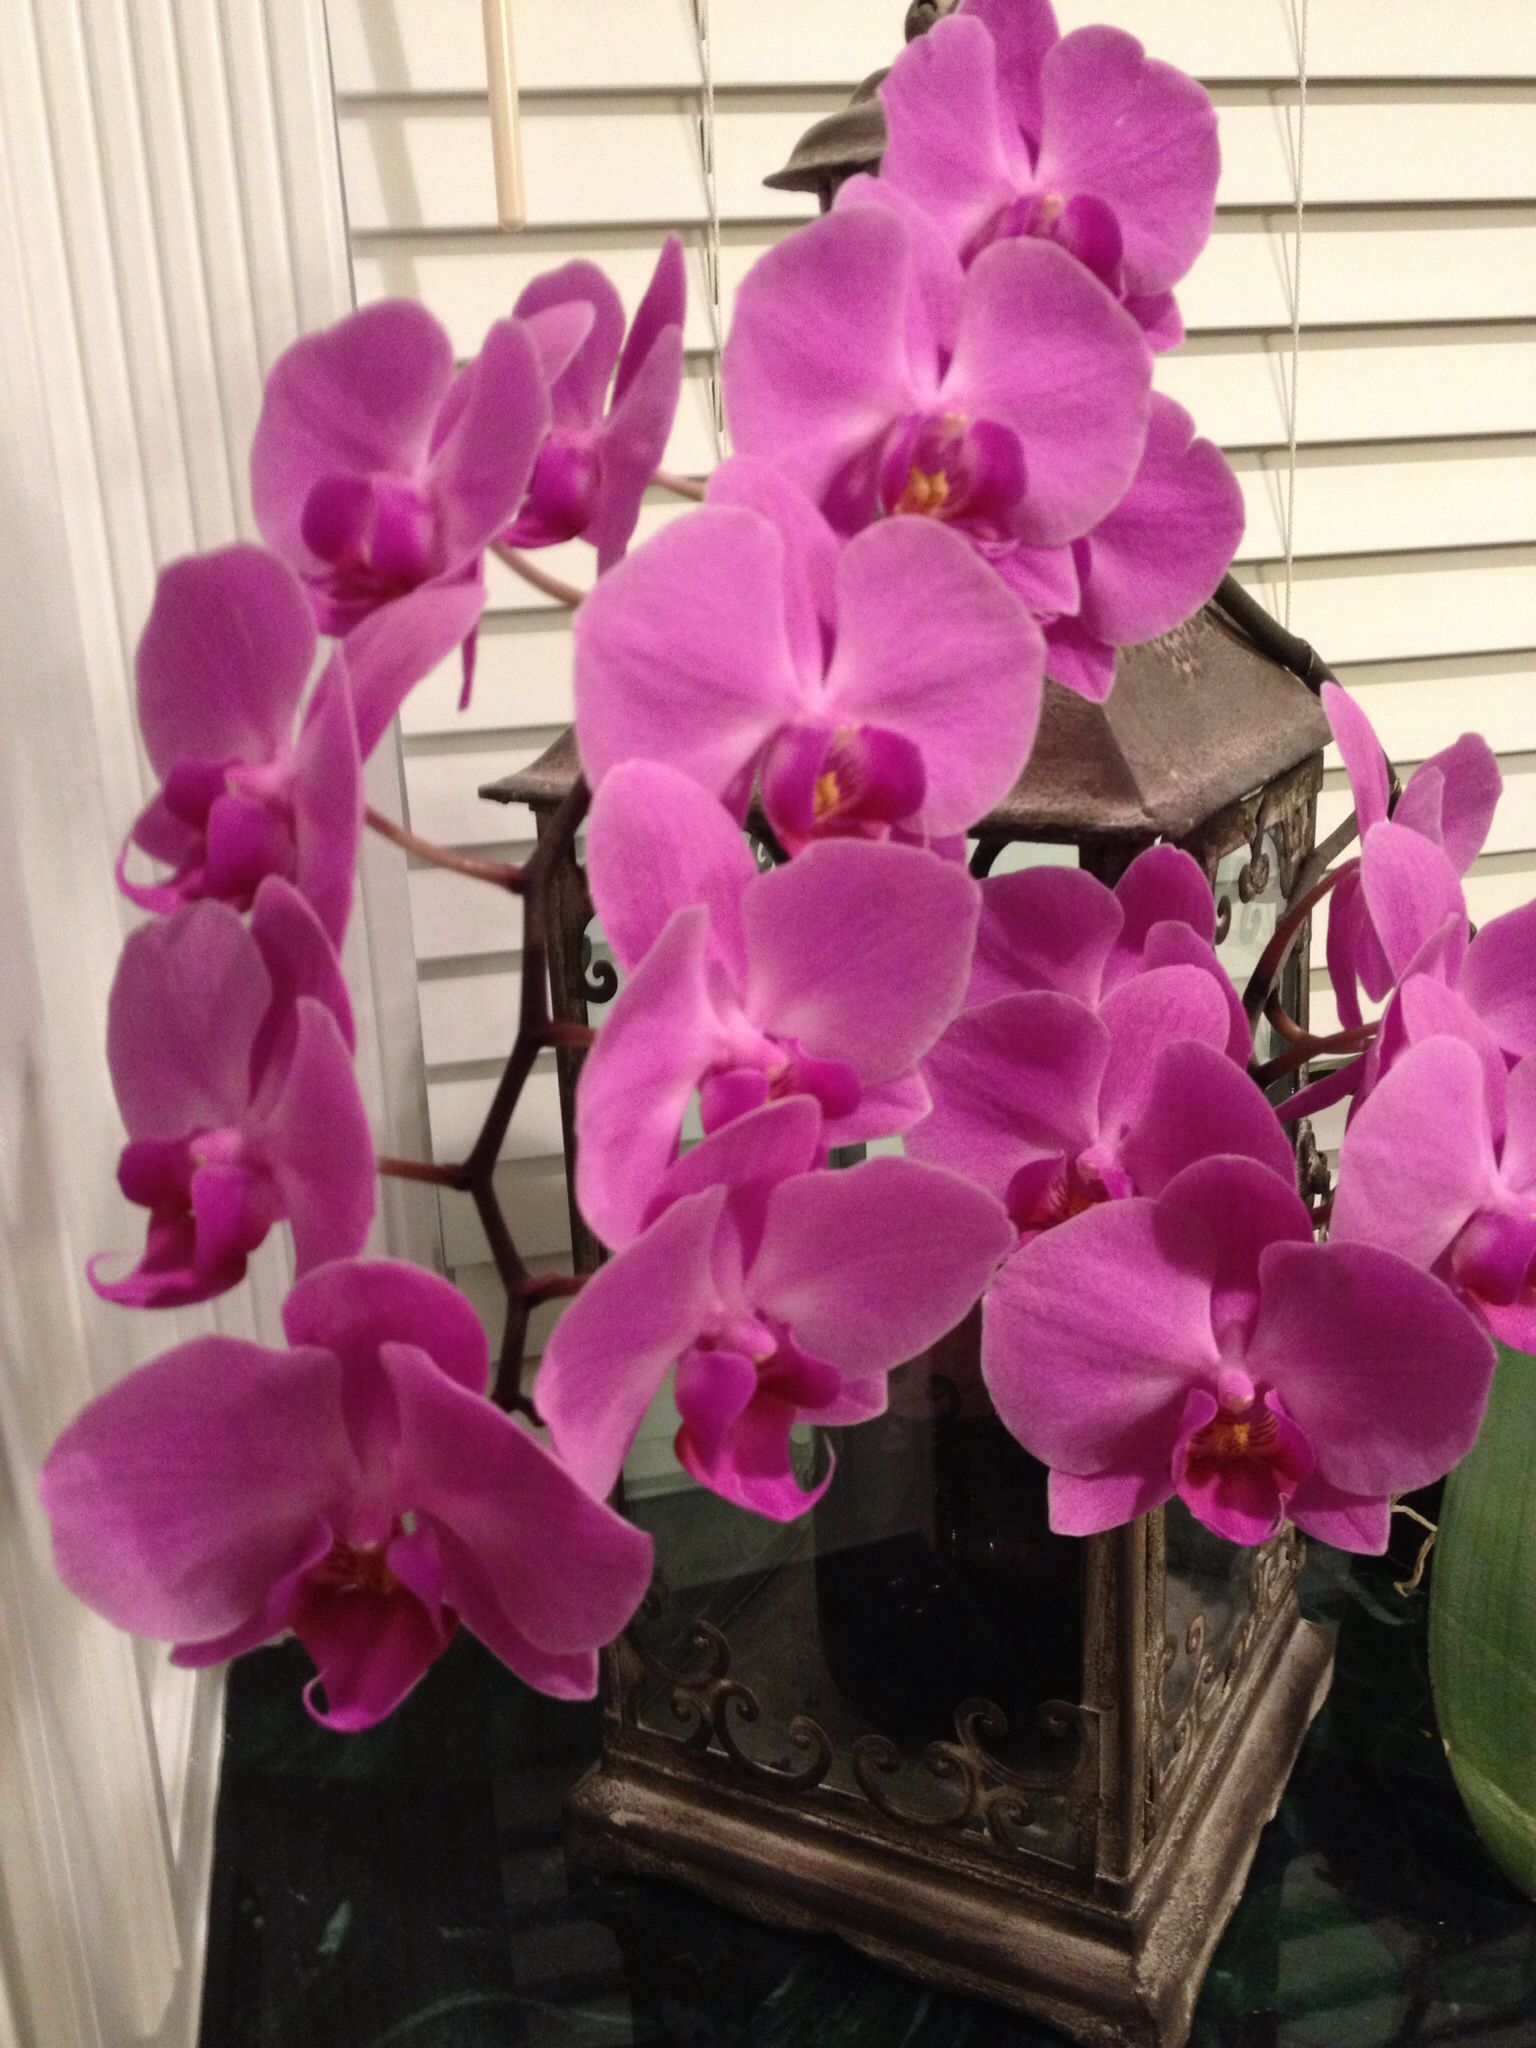 My dear friend gave me this orchid a year ago this is the fourth